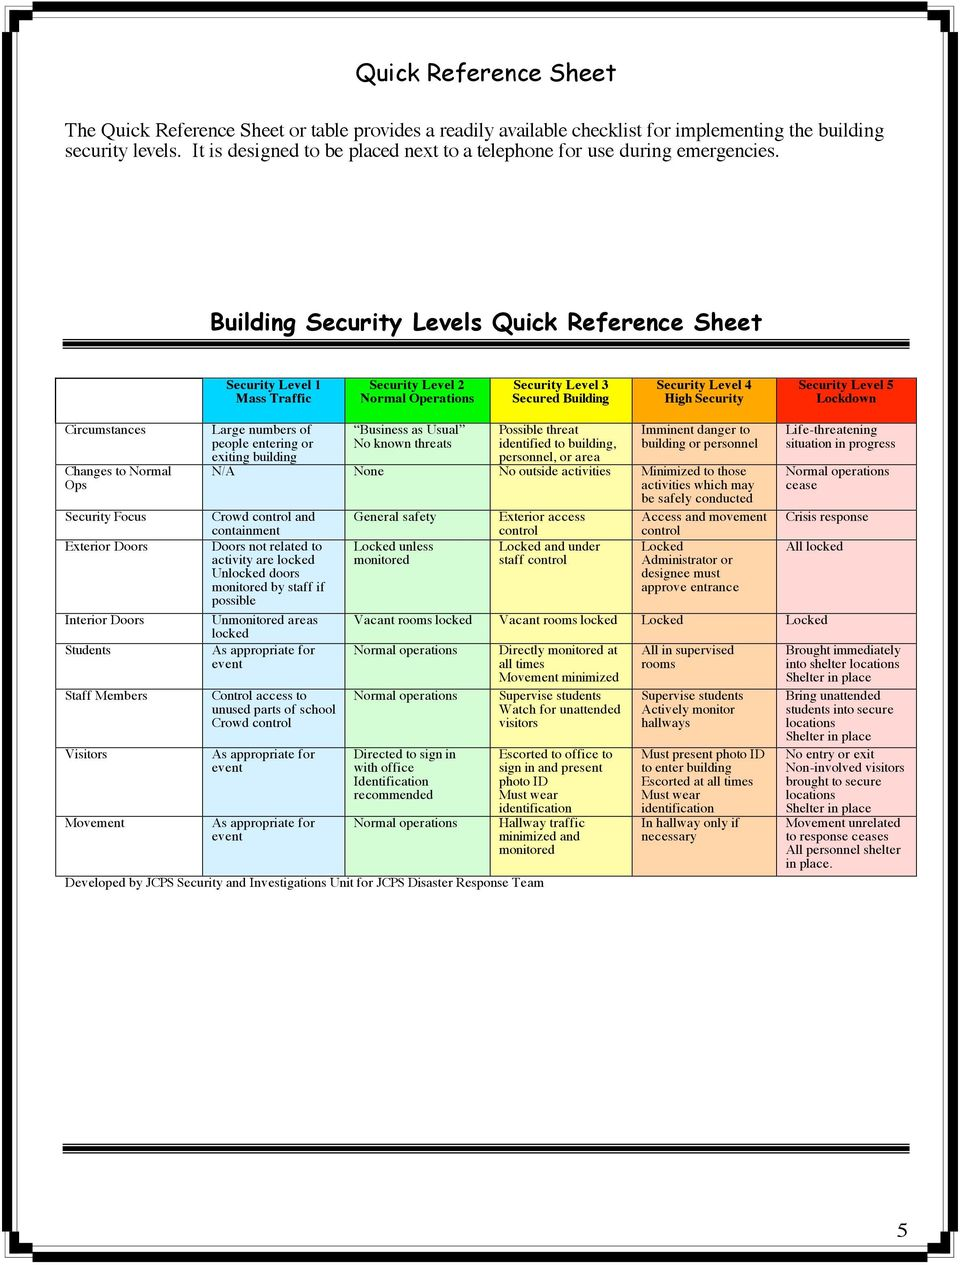 Building Security Levels Quick Reference Sheet Security Level 1 Mass Traffic Security Level 2 Normal Operations Security Level 3 Secured Building Security Level 4 High Security Security Level 5